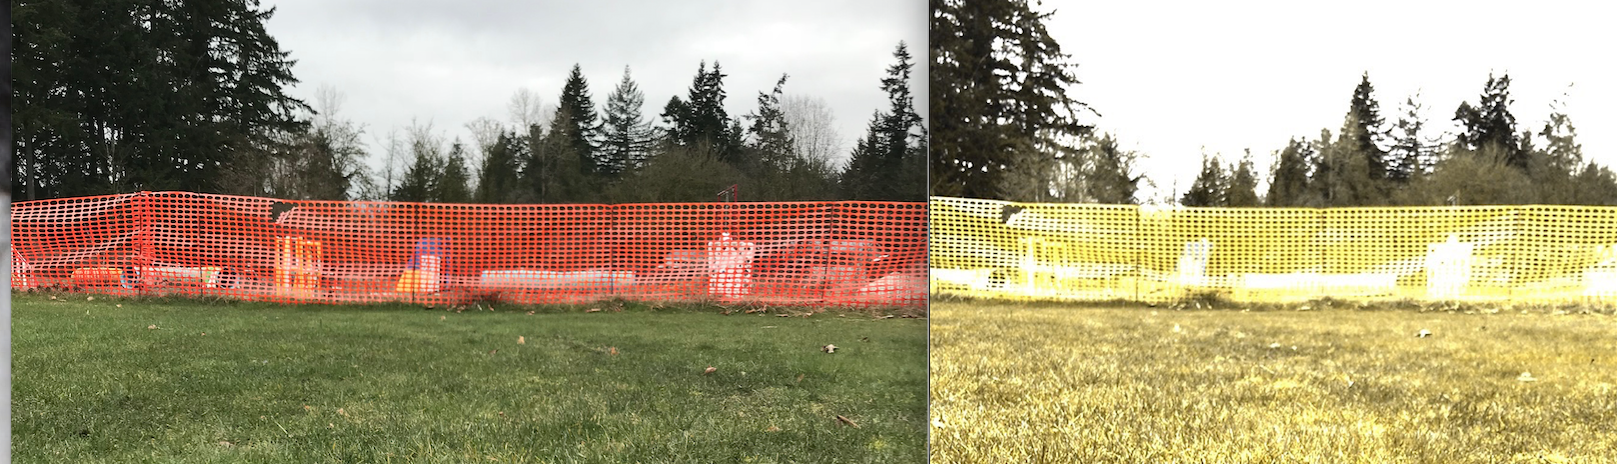 Orange or Green Barrier Fencing blends in with most surfaces. White fencing can make spotting jump depth more difficult.